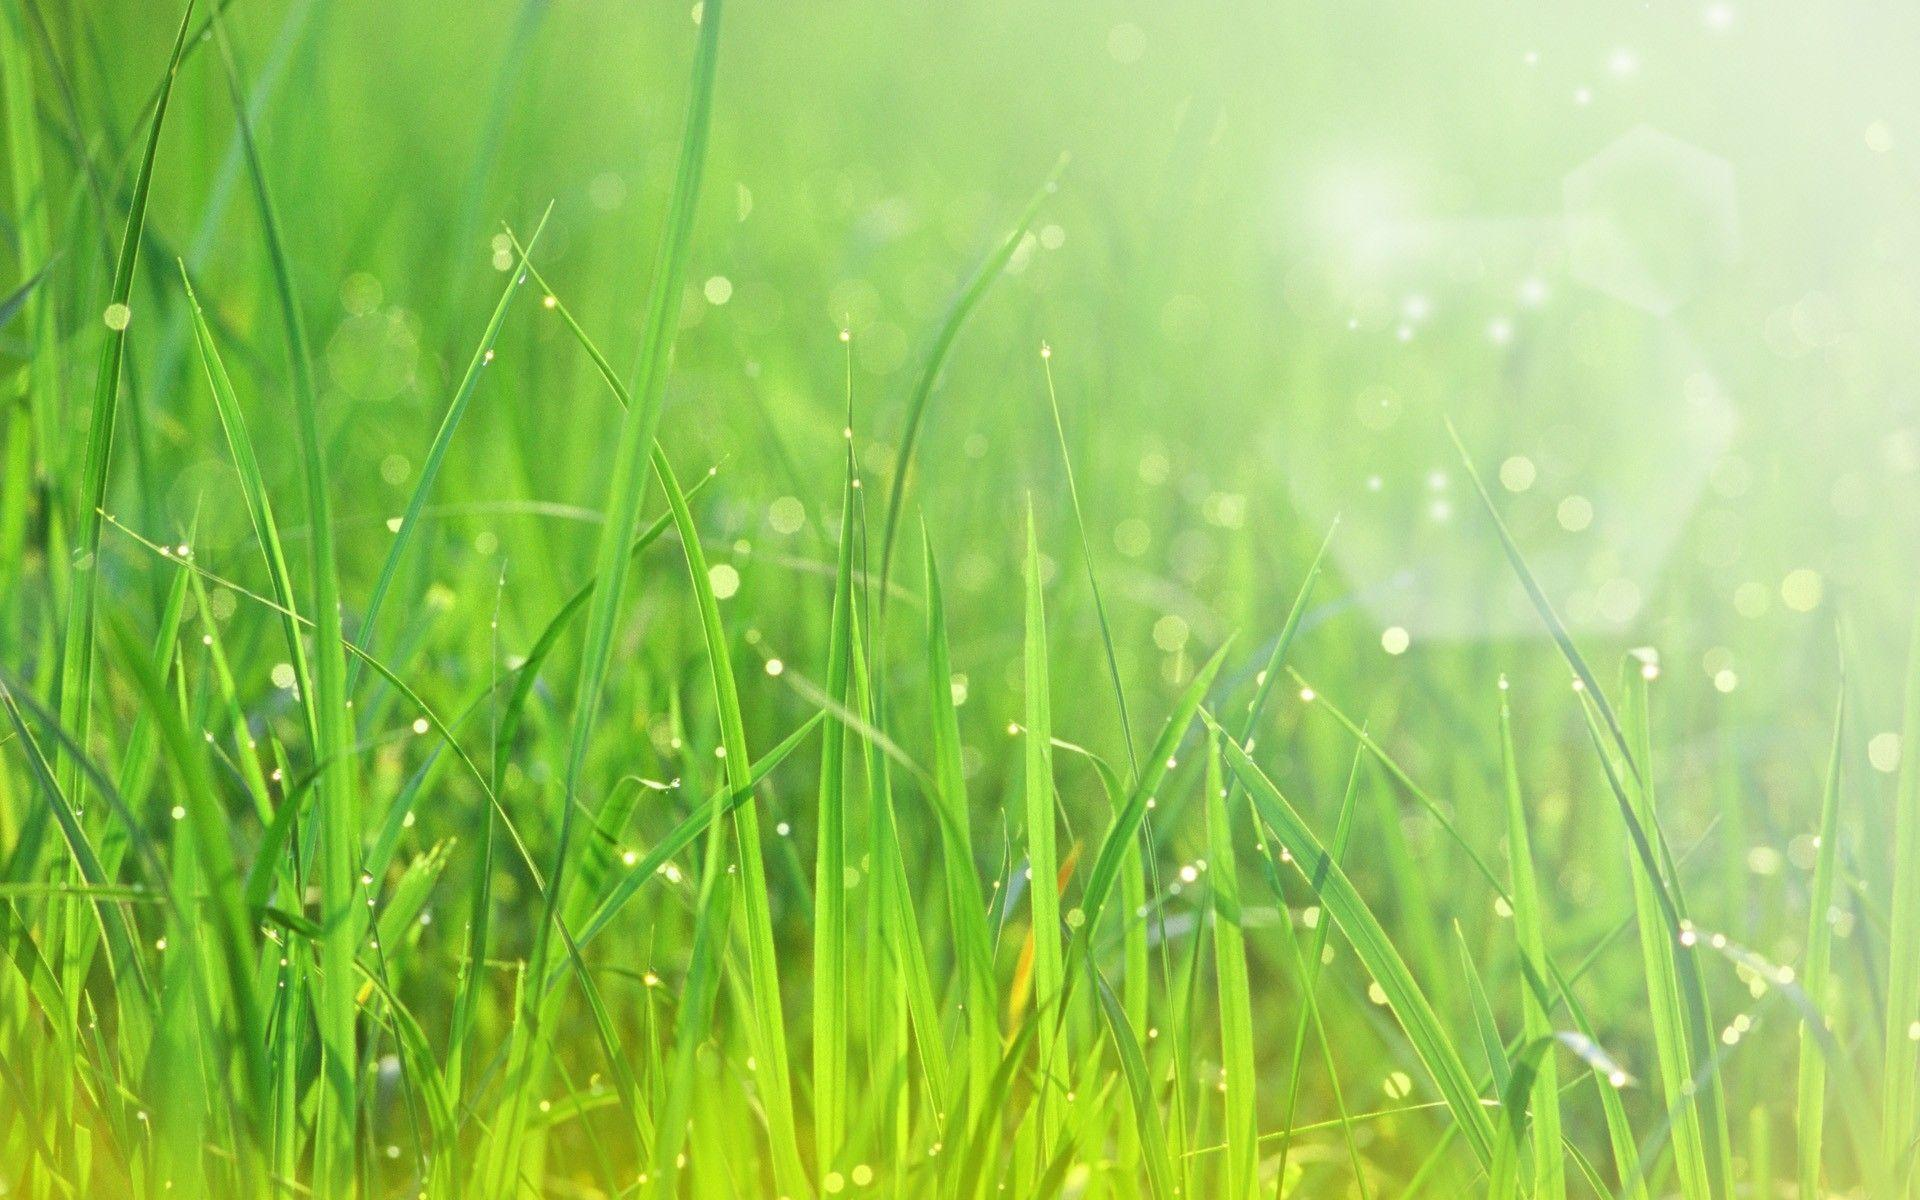 wallpapers for u003e green grass background hd grass background hd67 background